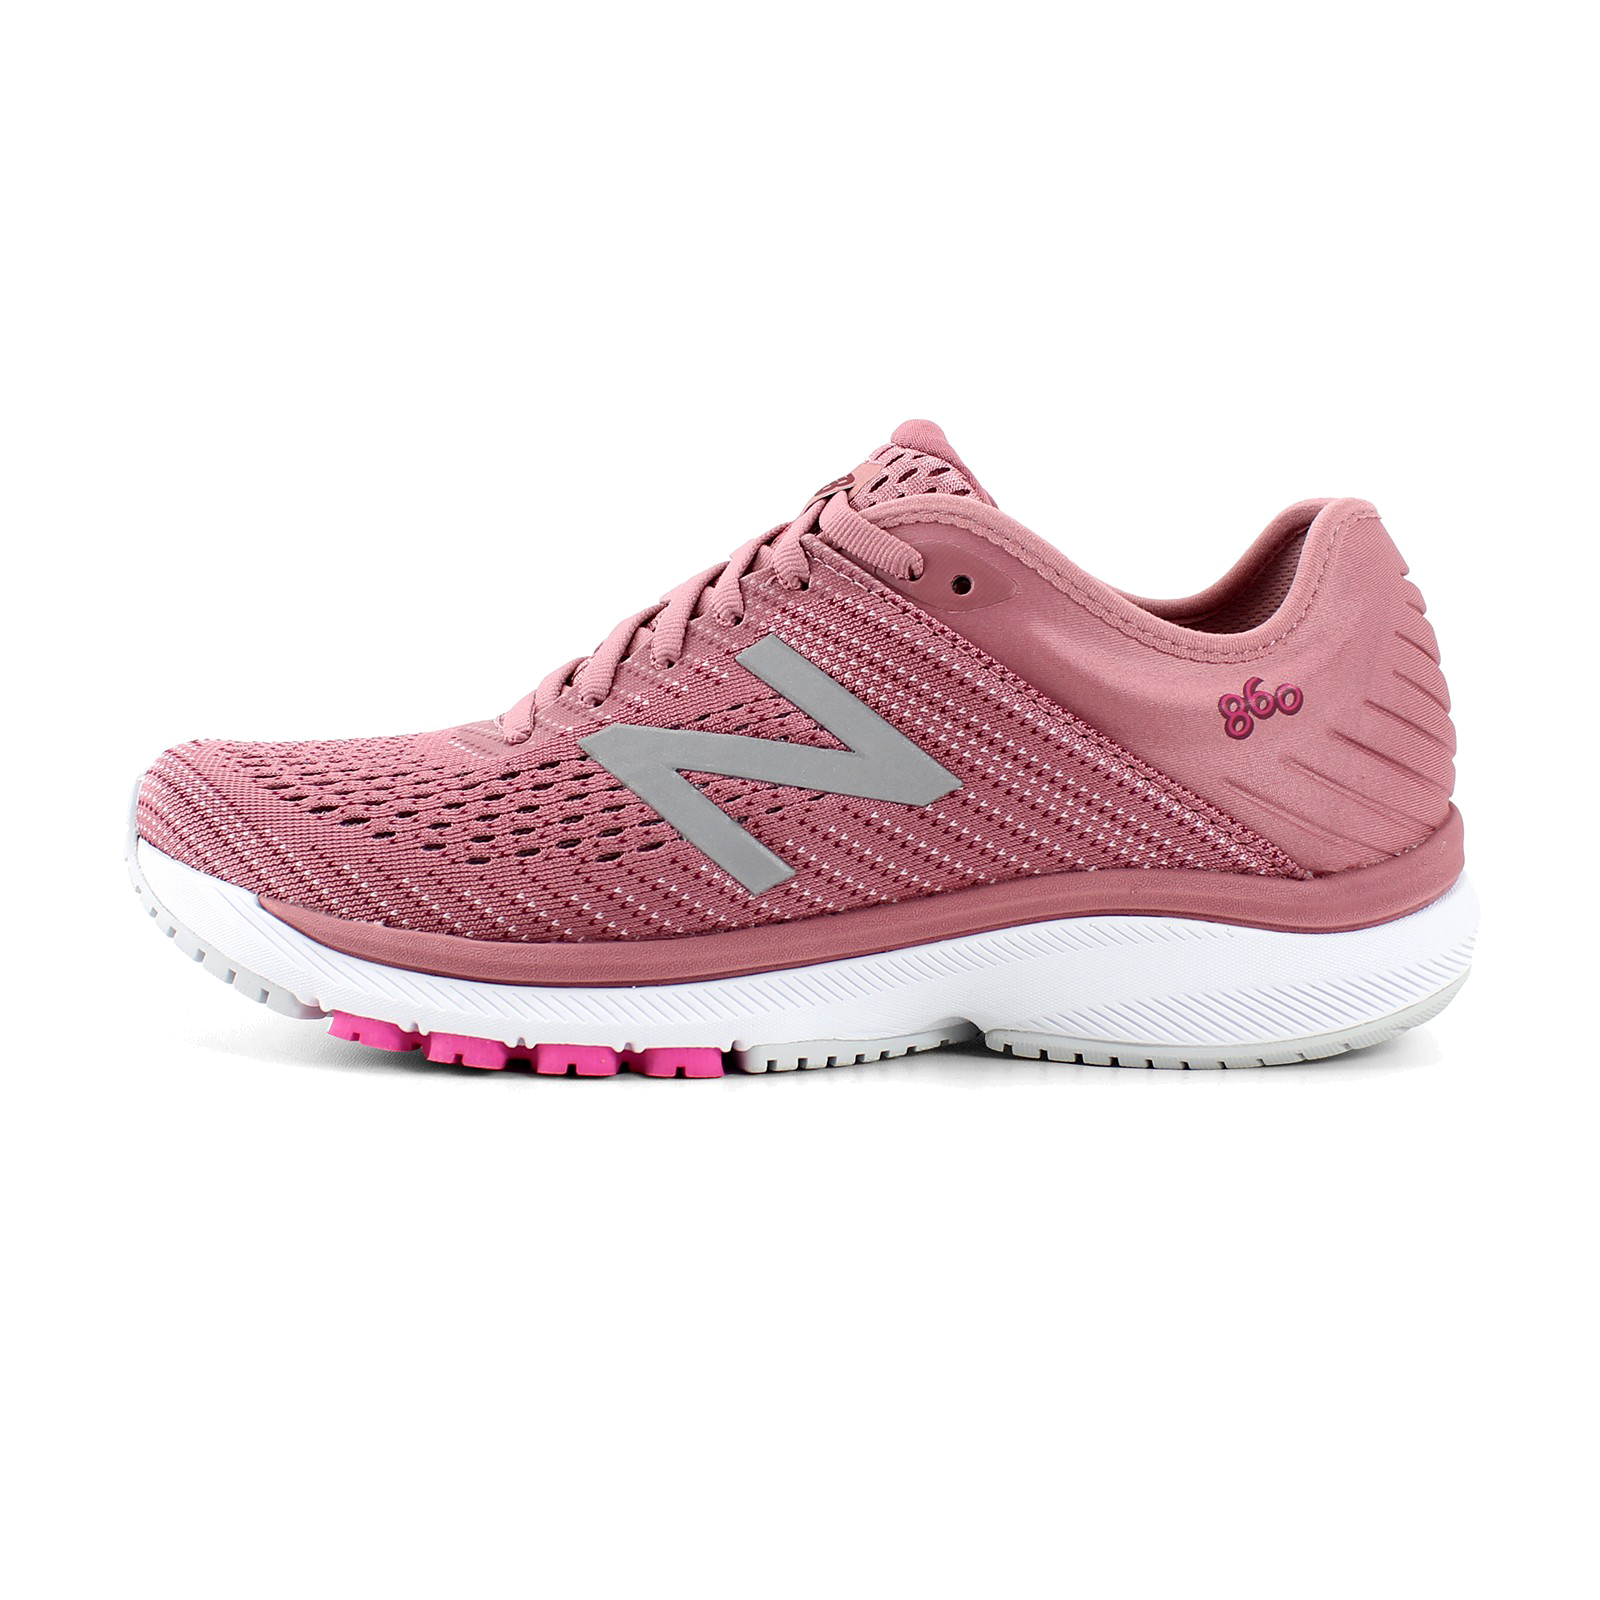 Women's 860 v10 (A - twilight rose/pink/peony)